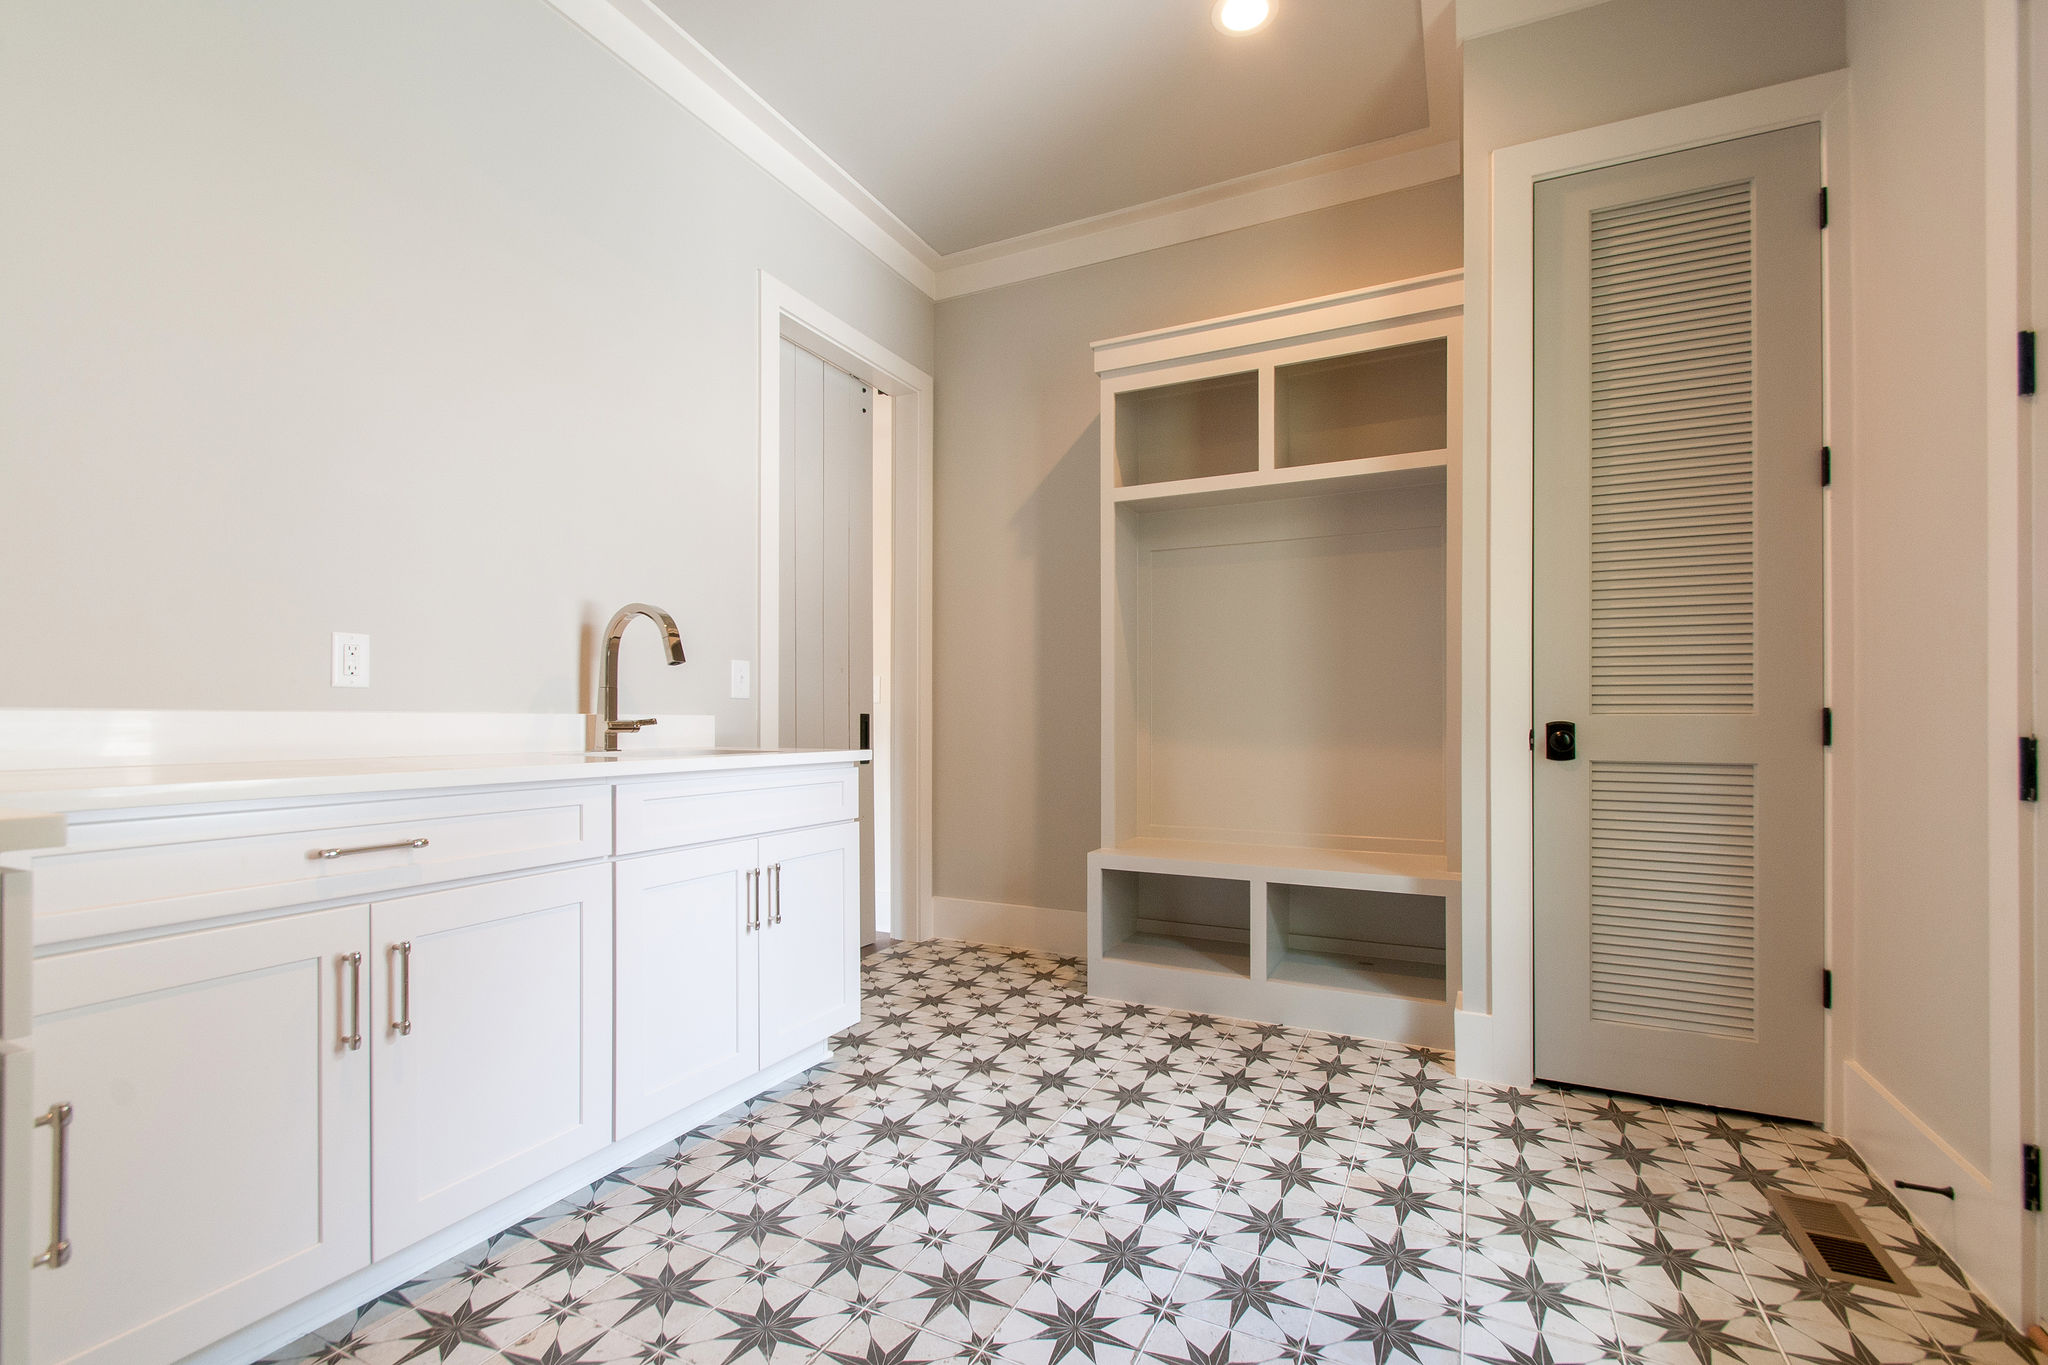 New Homes with large laundry room in Franklin, Brentwood, and Thompson Station TN with Custom Home Design